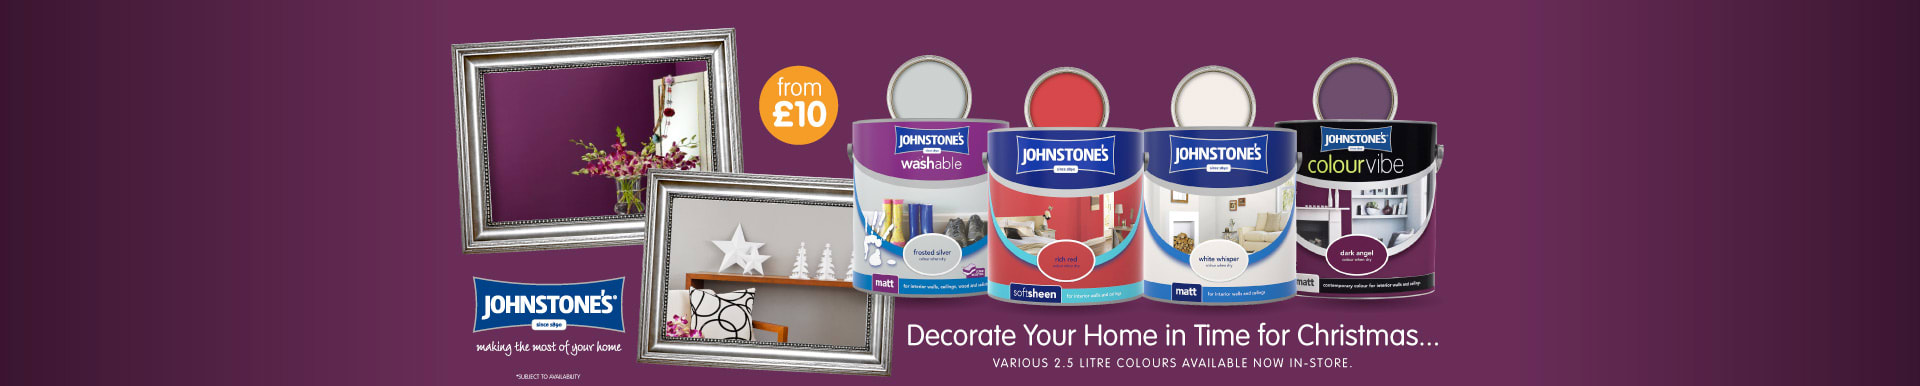 Save on Johnstone's Paint at B&M.